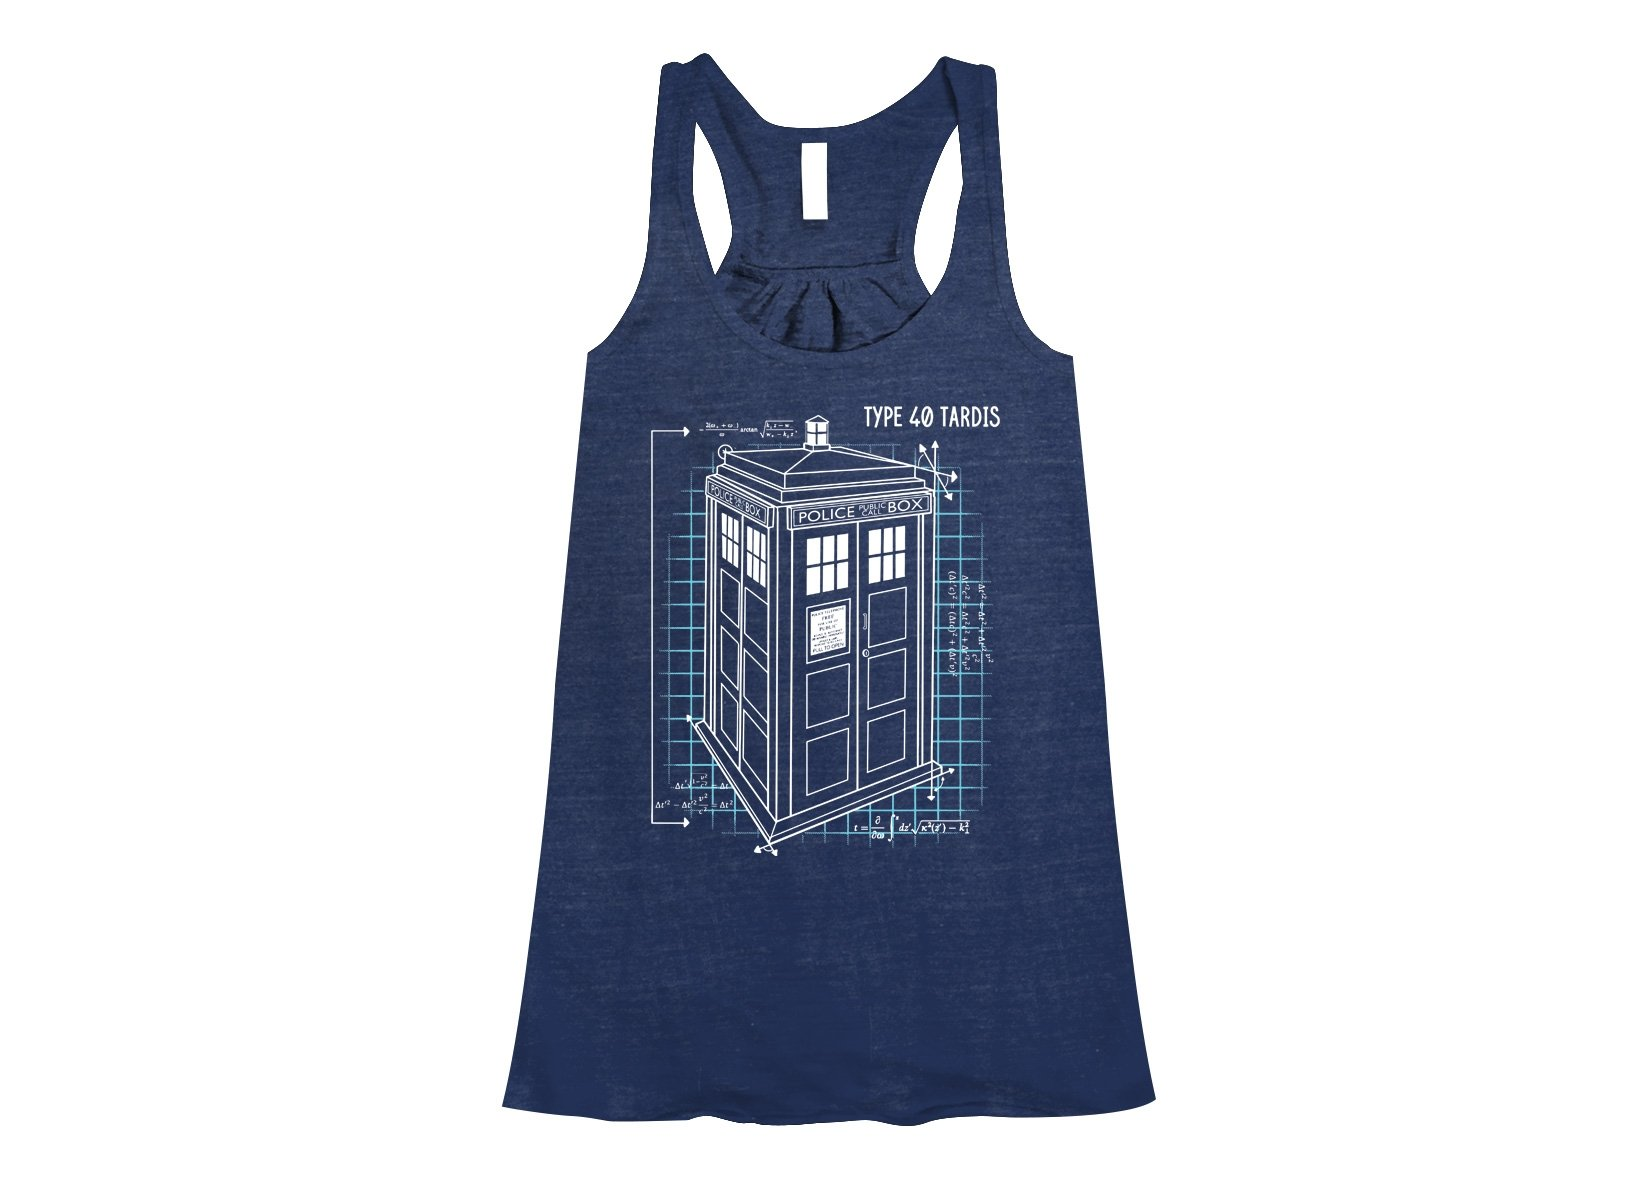 Type 40 Tardis on Womens Tanks T-Shirt